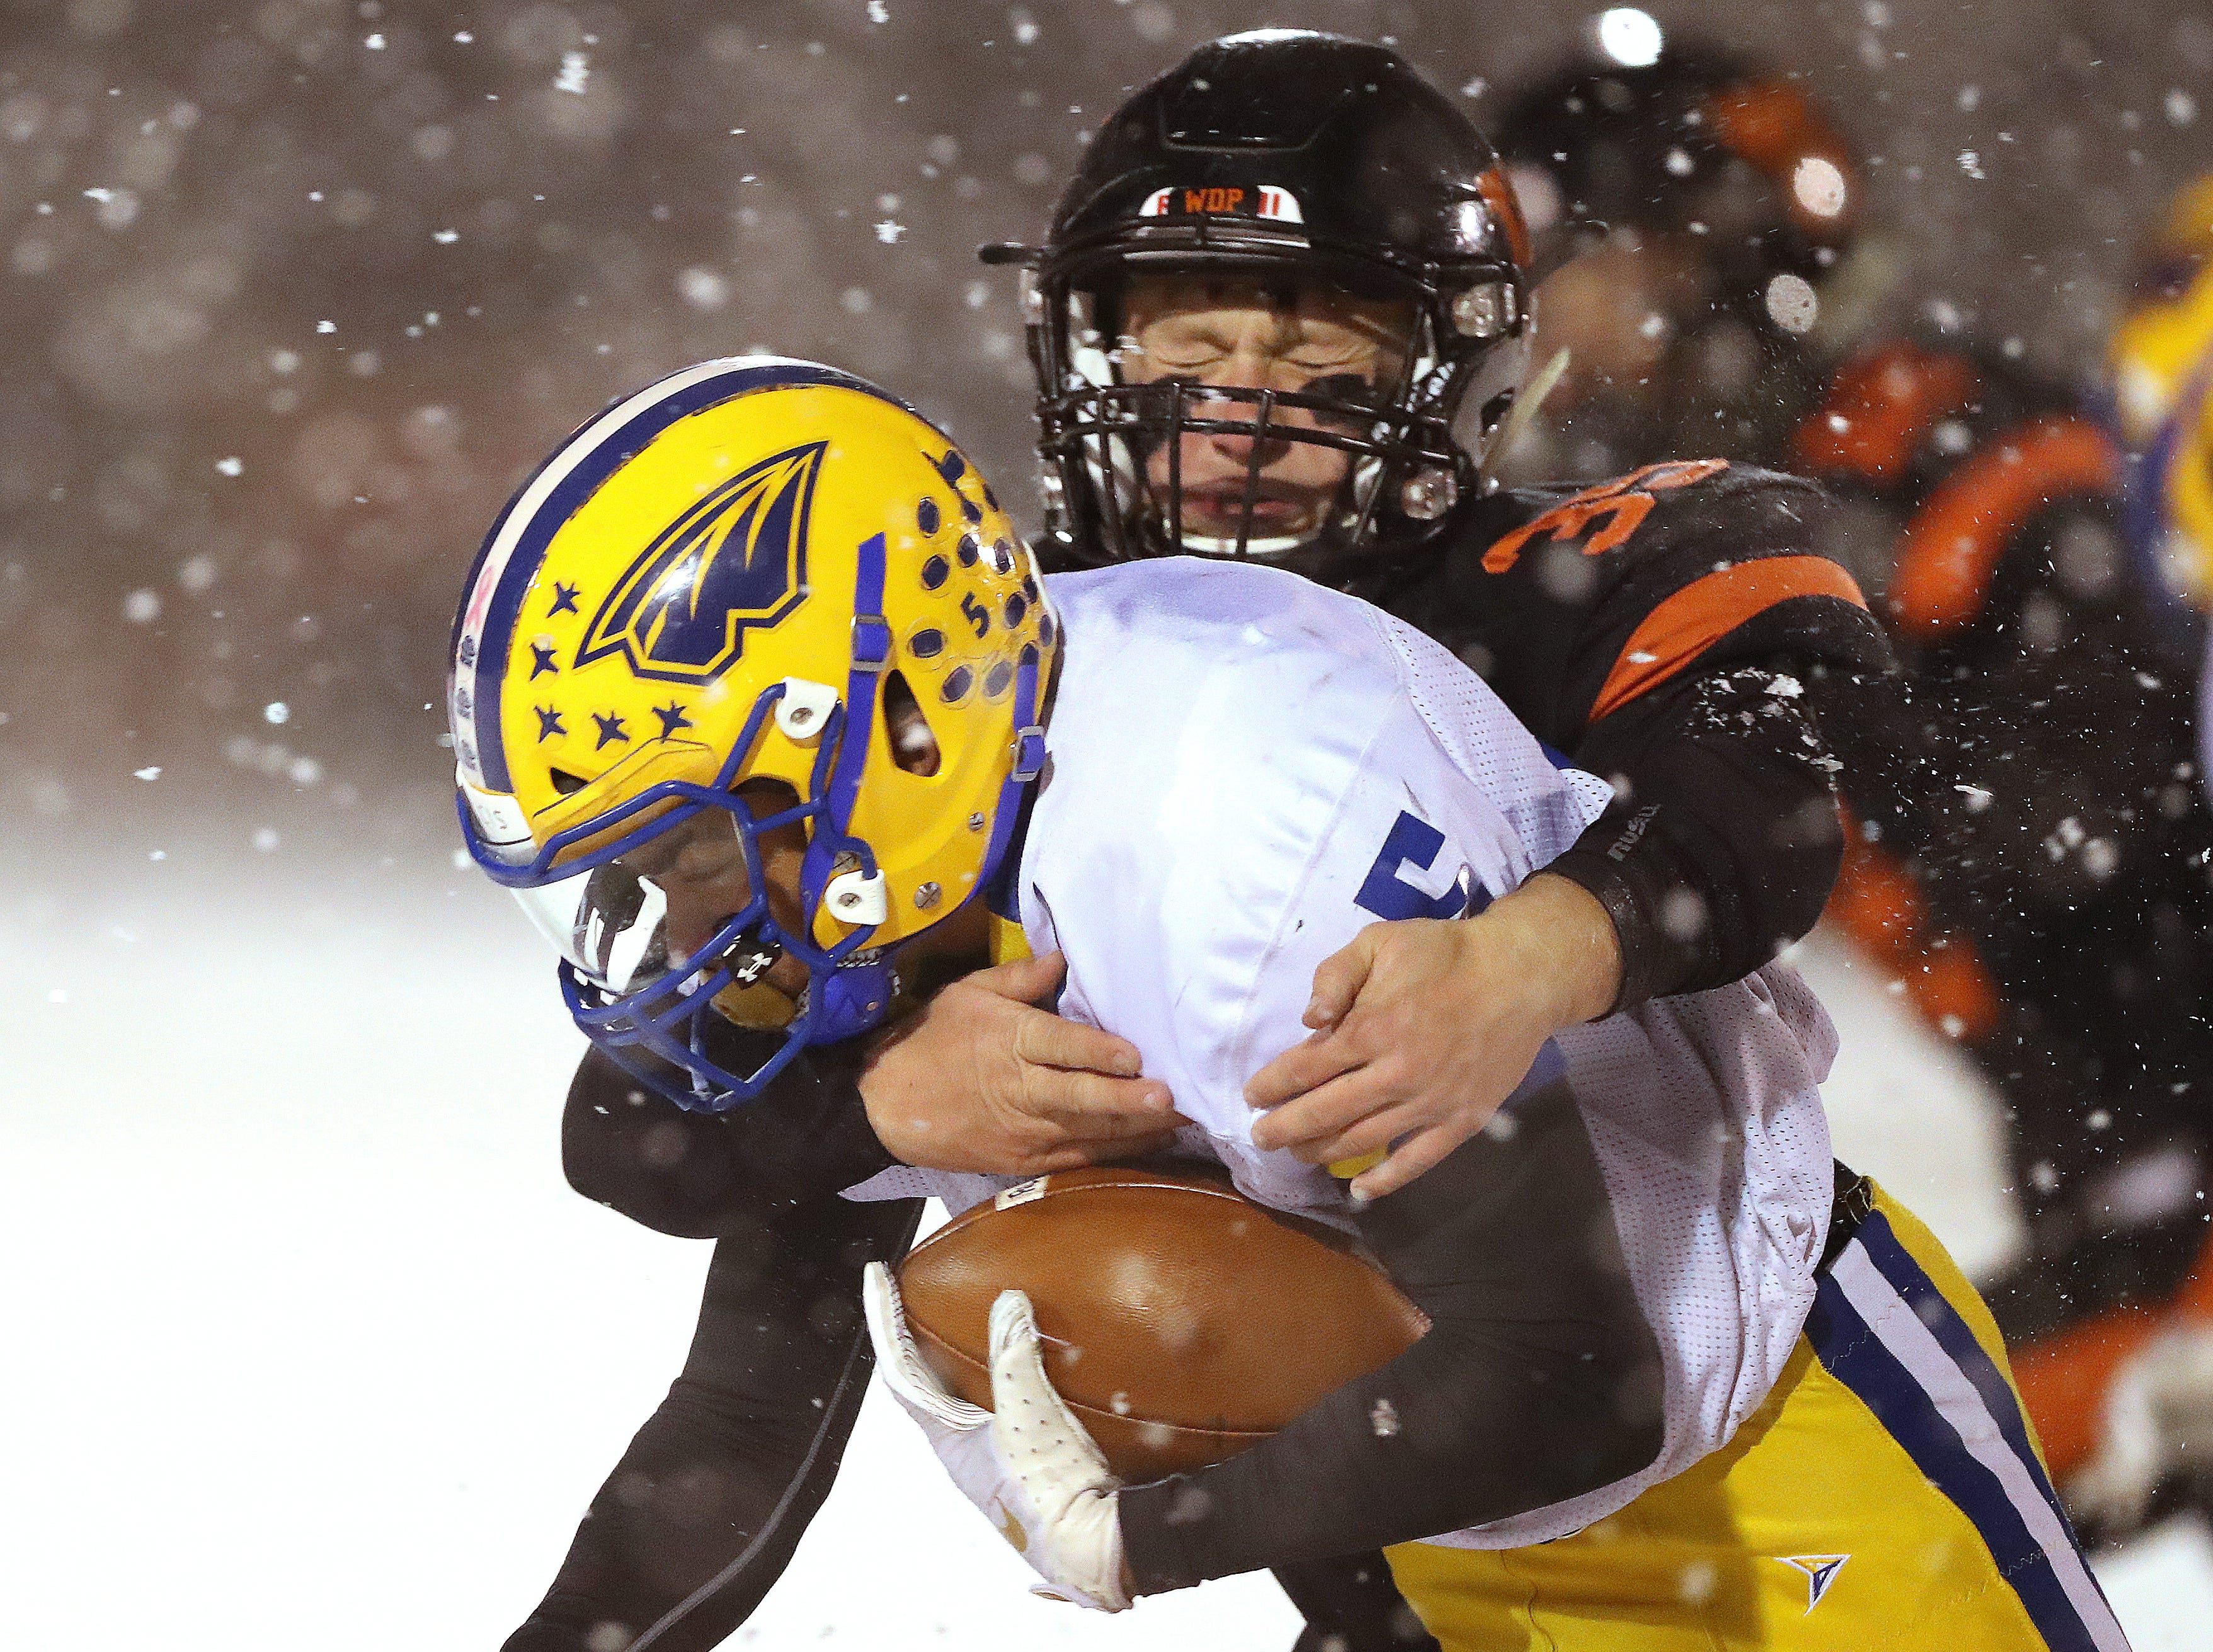 West De Pere's Alex Spitzer tackles DeAirus Clerveaux against Rice Lake in the Division 3 Level 4  WIAA playoffs Friday, November 9, 2018 at DC Everest in Weston, Wis.